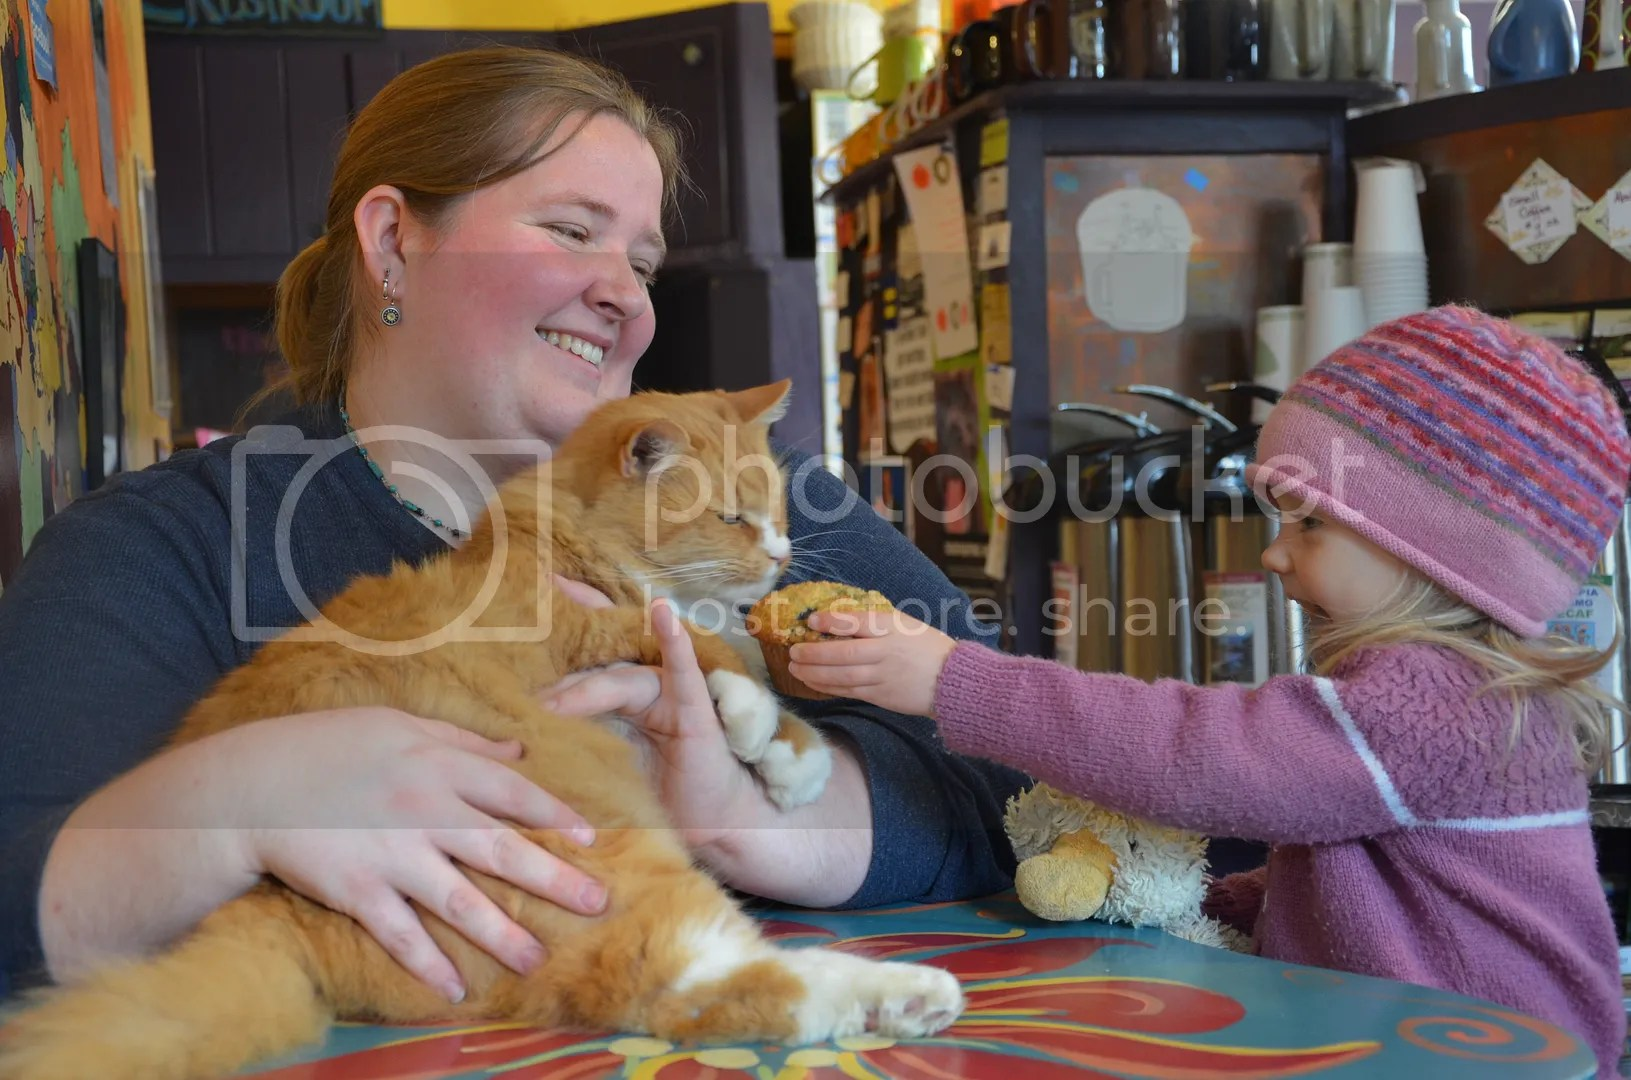 The Orange Cat Cafe Cat 1gets a cupcake photo DSC_3186_zps47658683.jpg